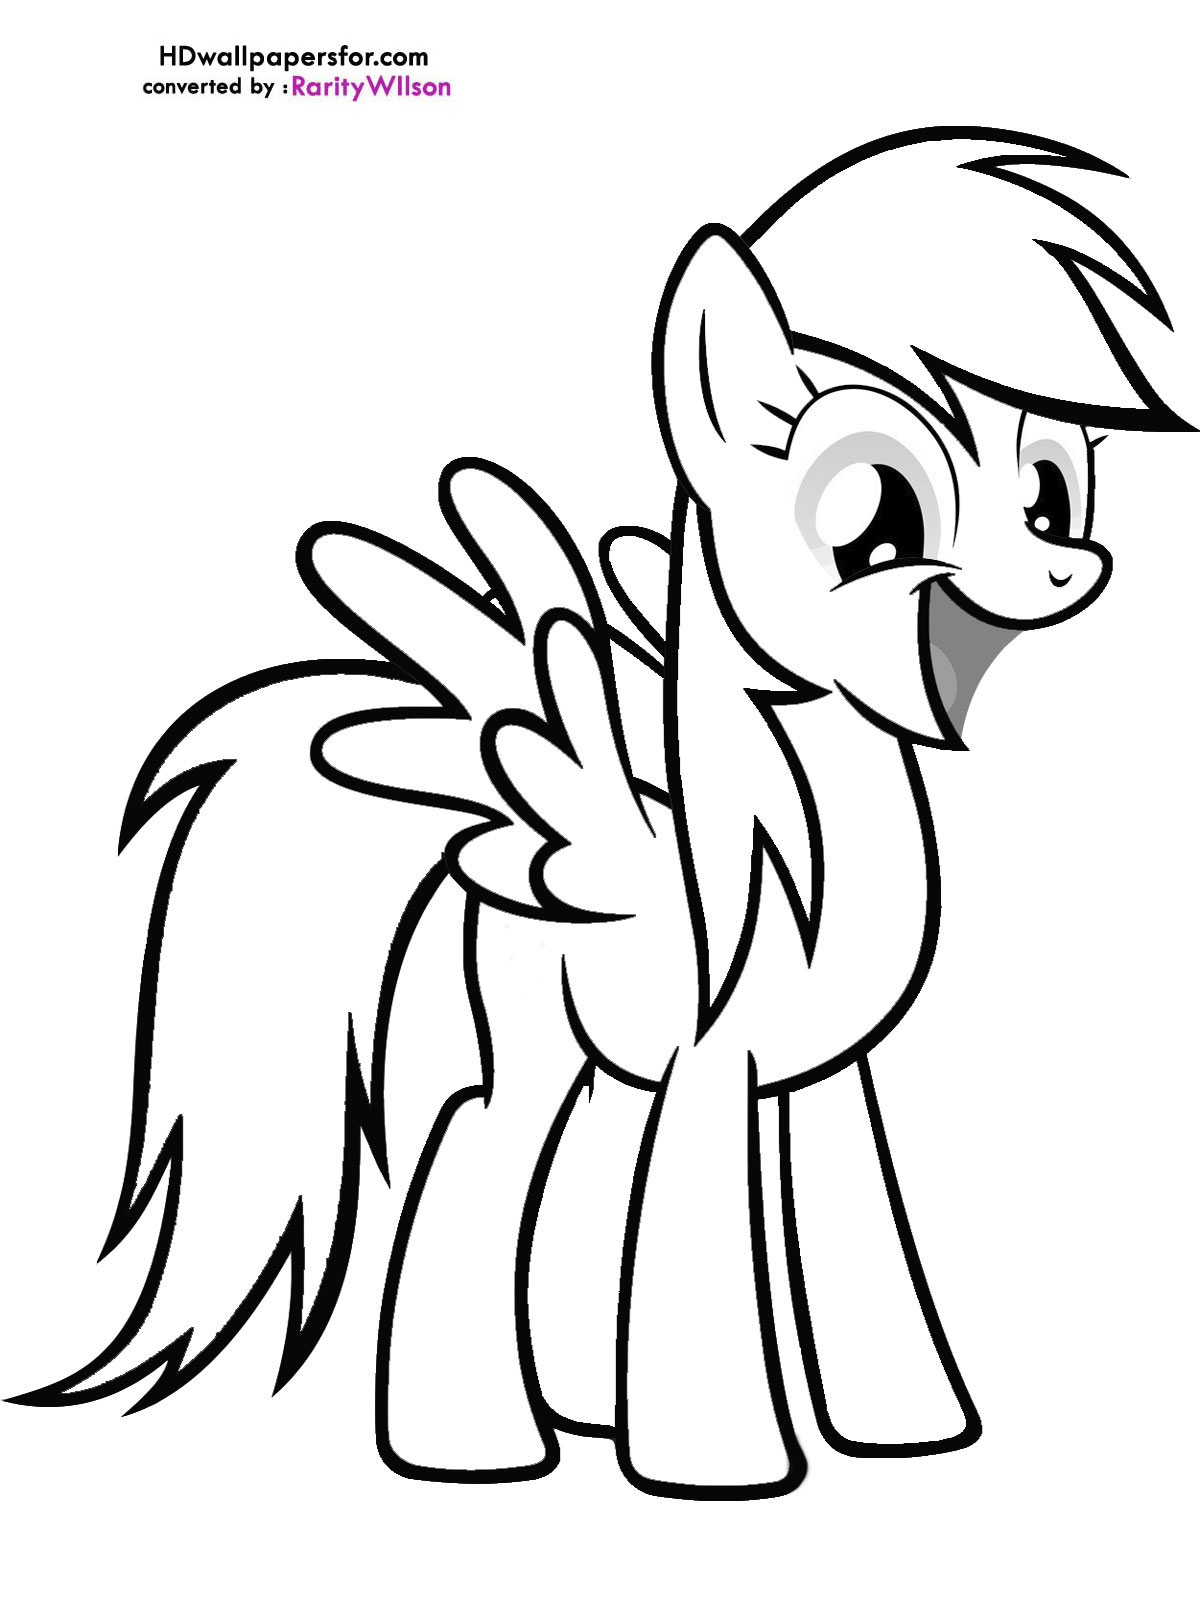 my little pony friendship is magic coloring page my little pony coloring pages friendship is magic is page my pony coloring friendship magic little